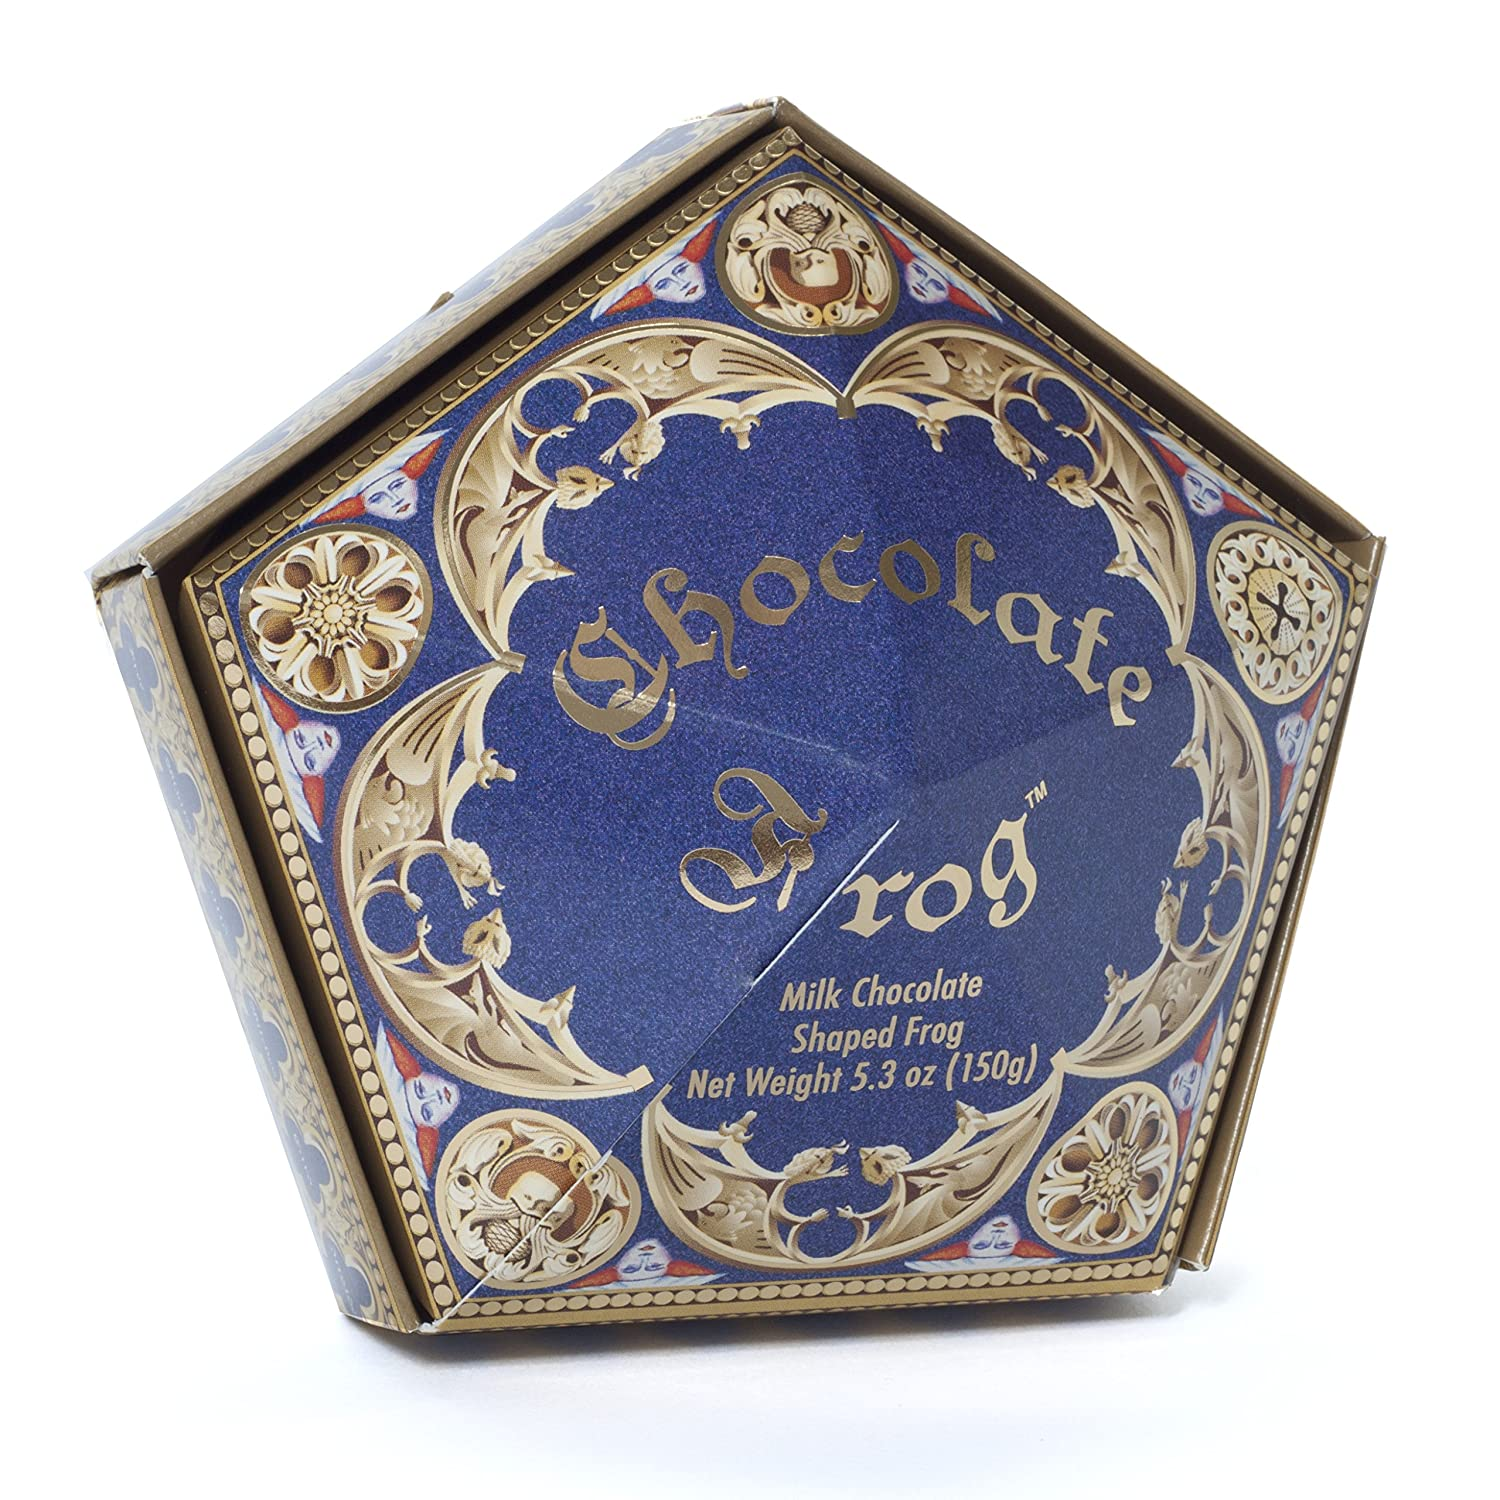 Amazon.com : Wizarding World of Harry Potter Chocolate Frog ...